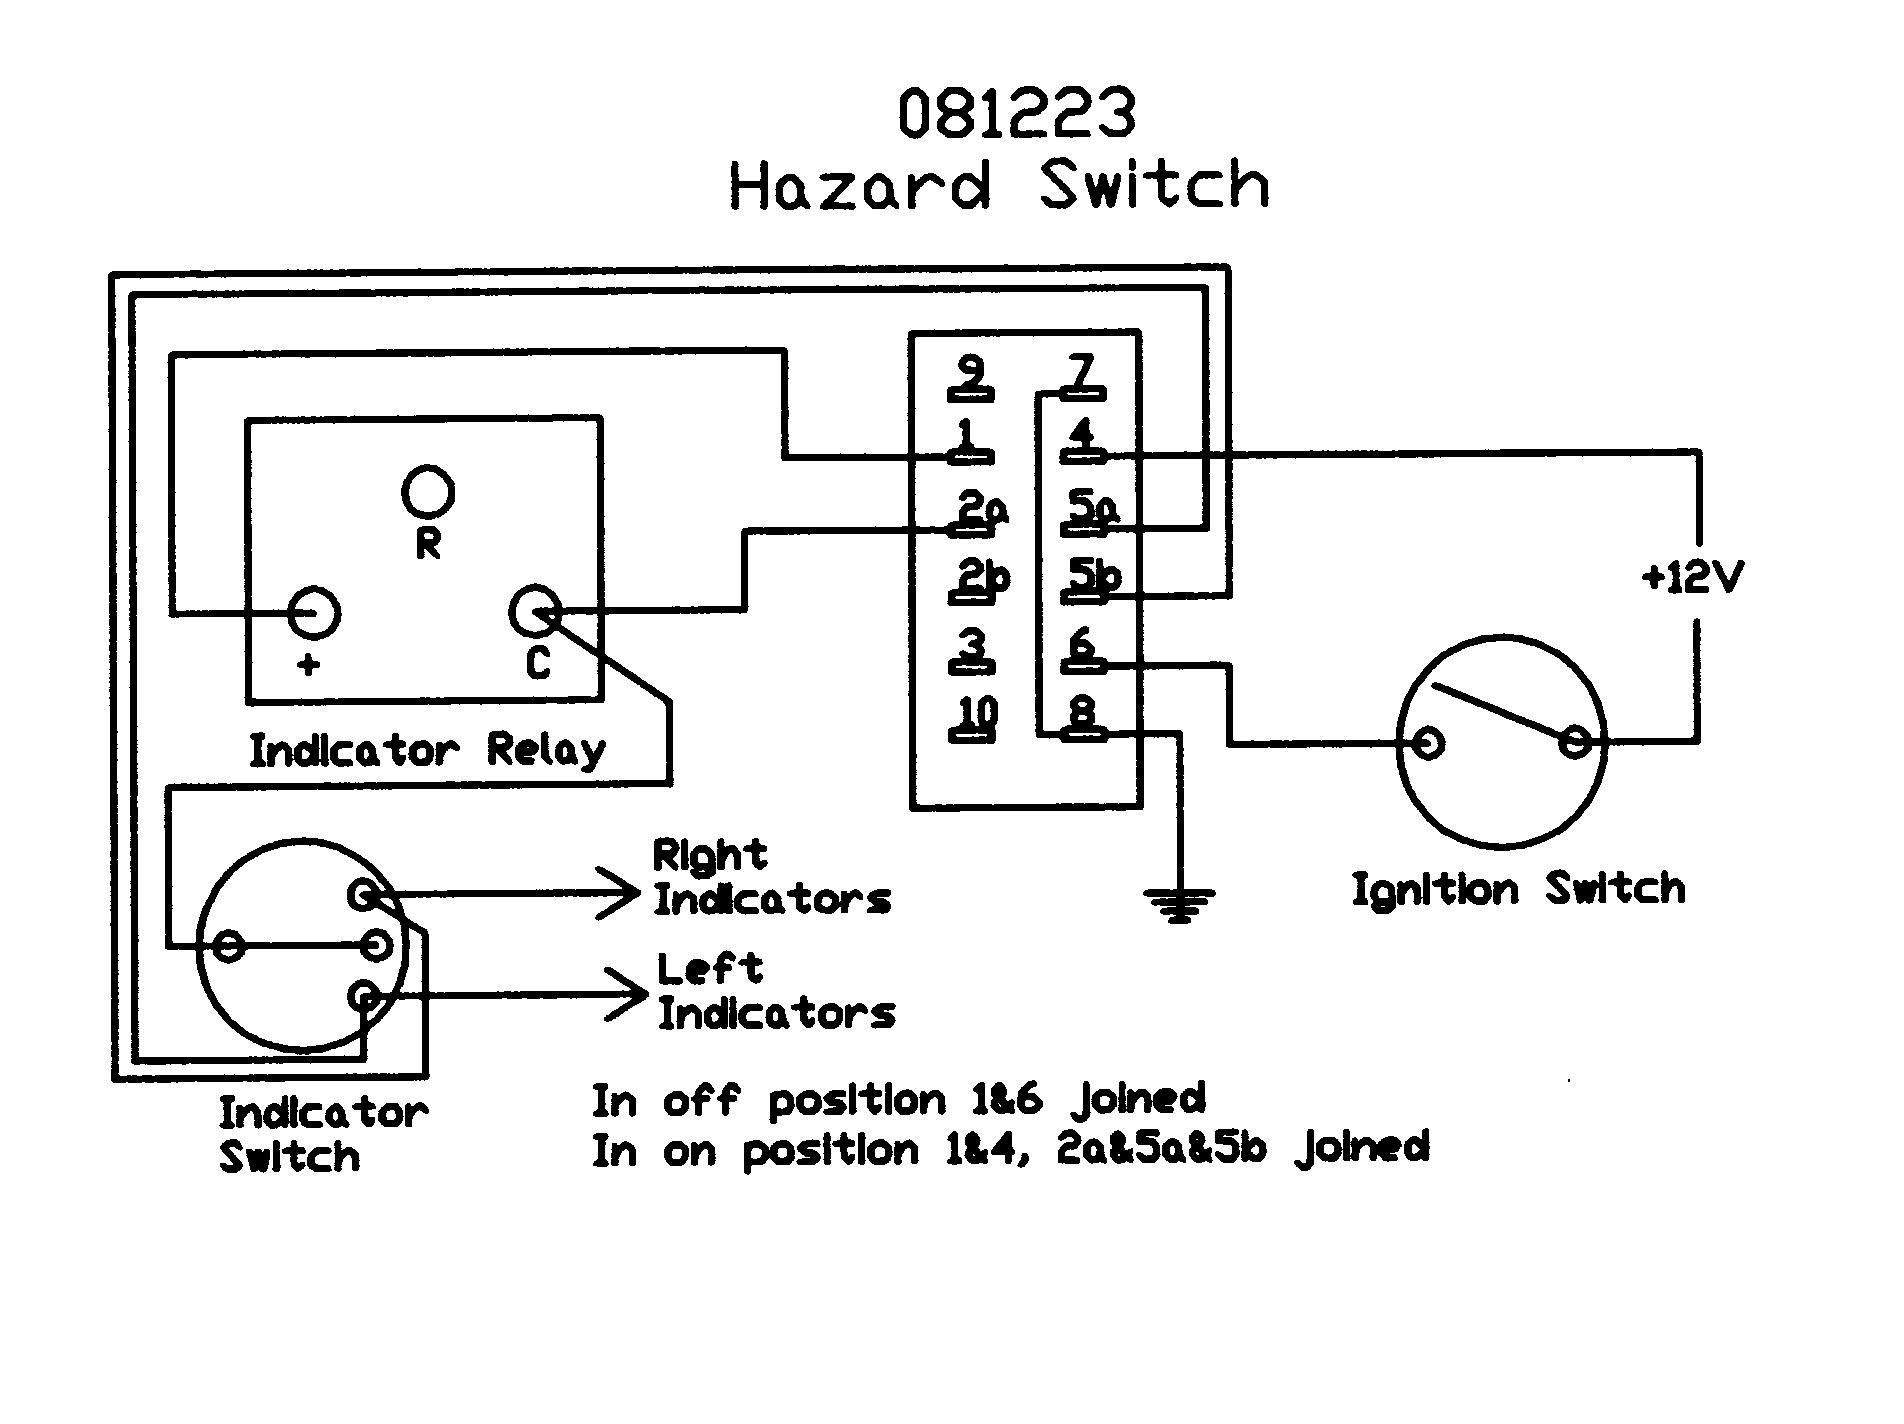 Rocker hazard switch 081223 wiring diagram asfbconference2016